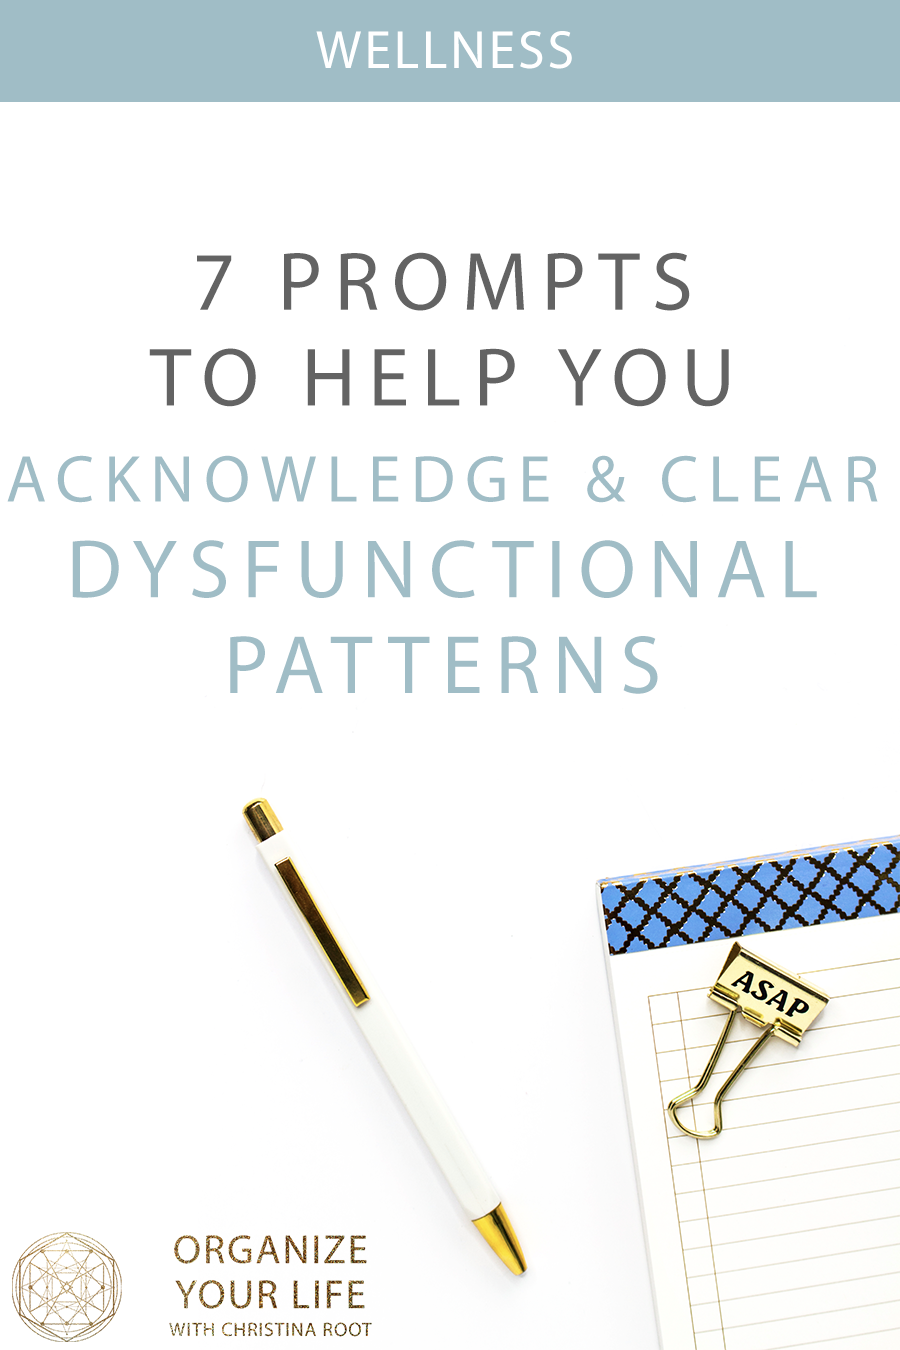 7 Prompts to help you clear dysfunctional recurring patterns